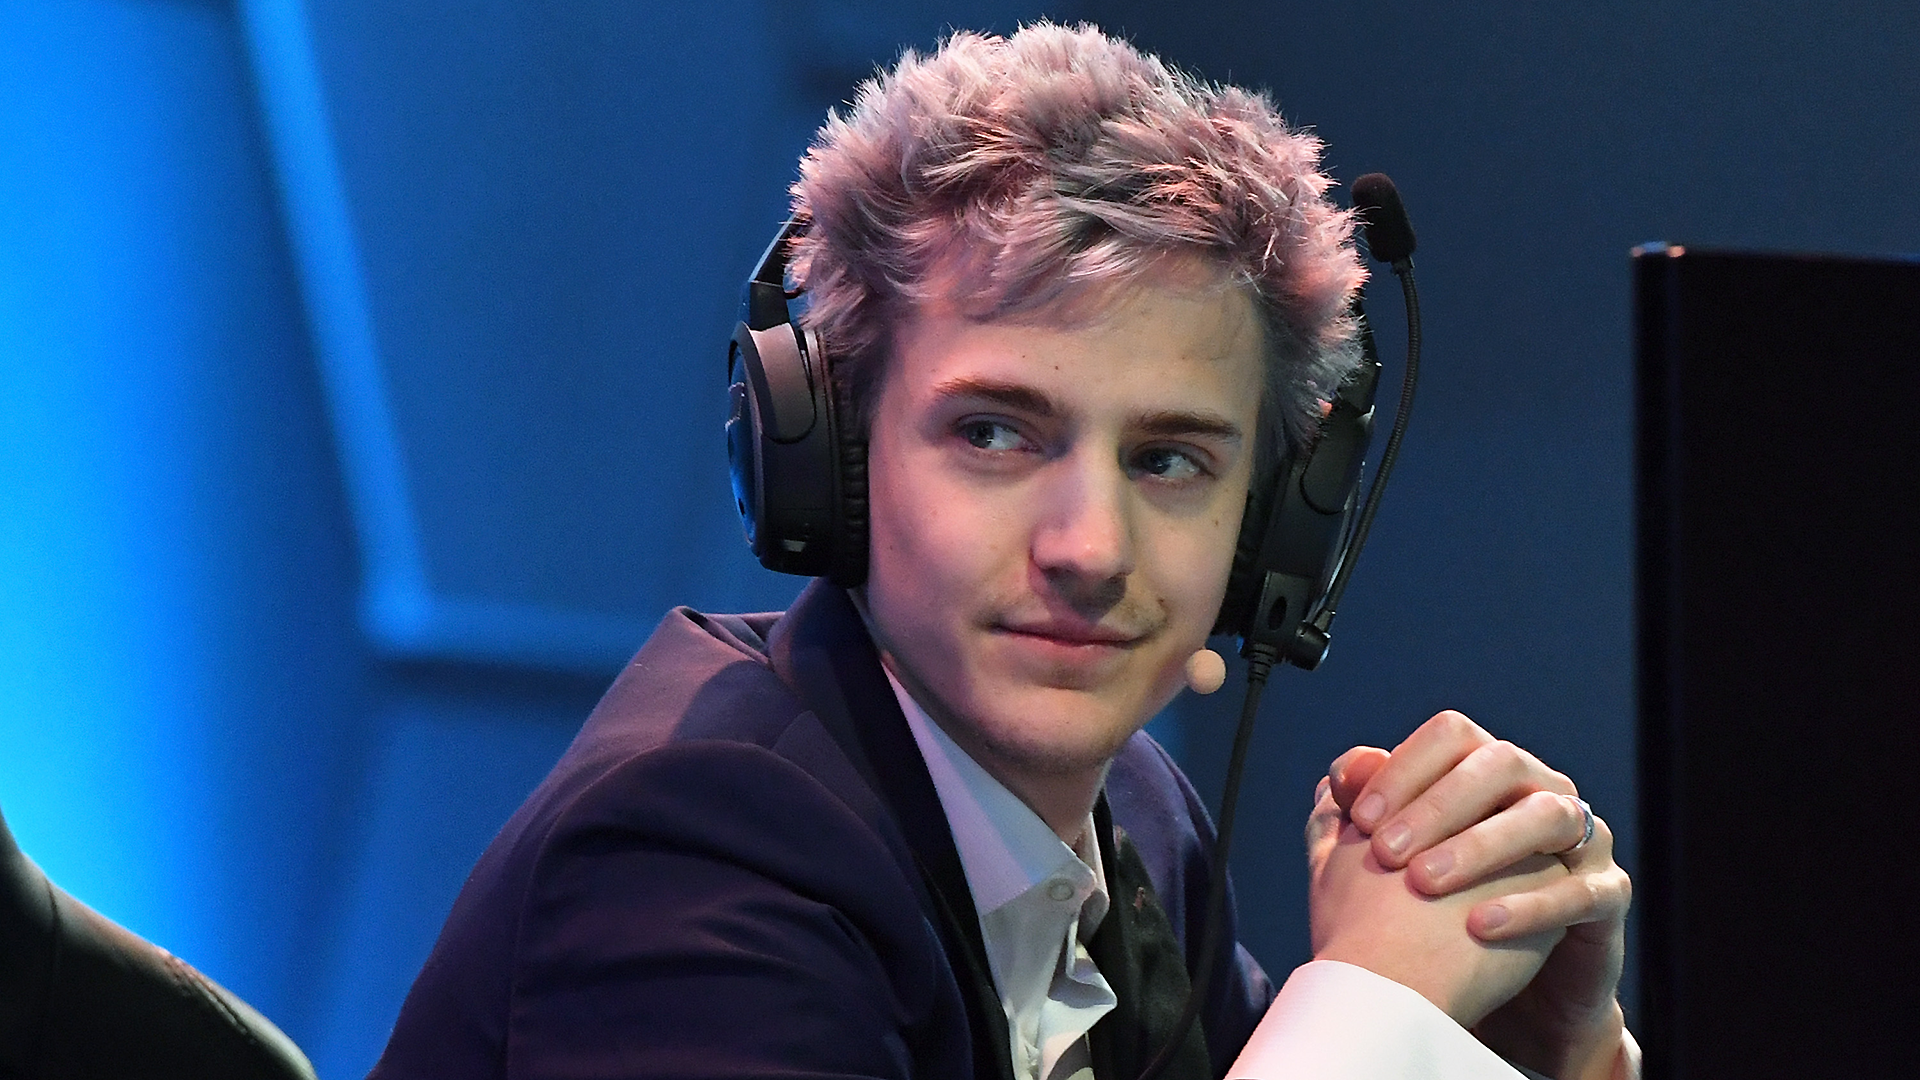 Ninja, Alinity and xQc get into heated Twitter argument: 'Don't you have another cat to abuse?' 1